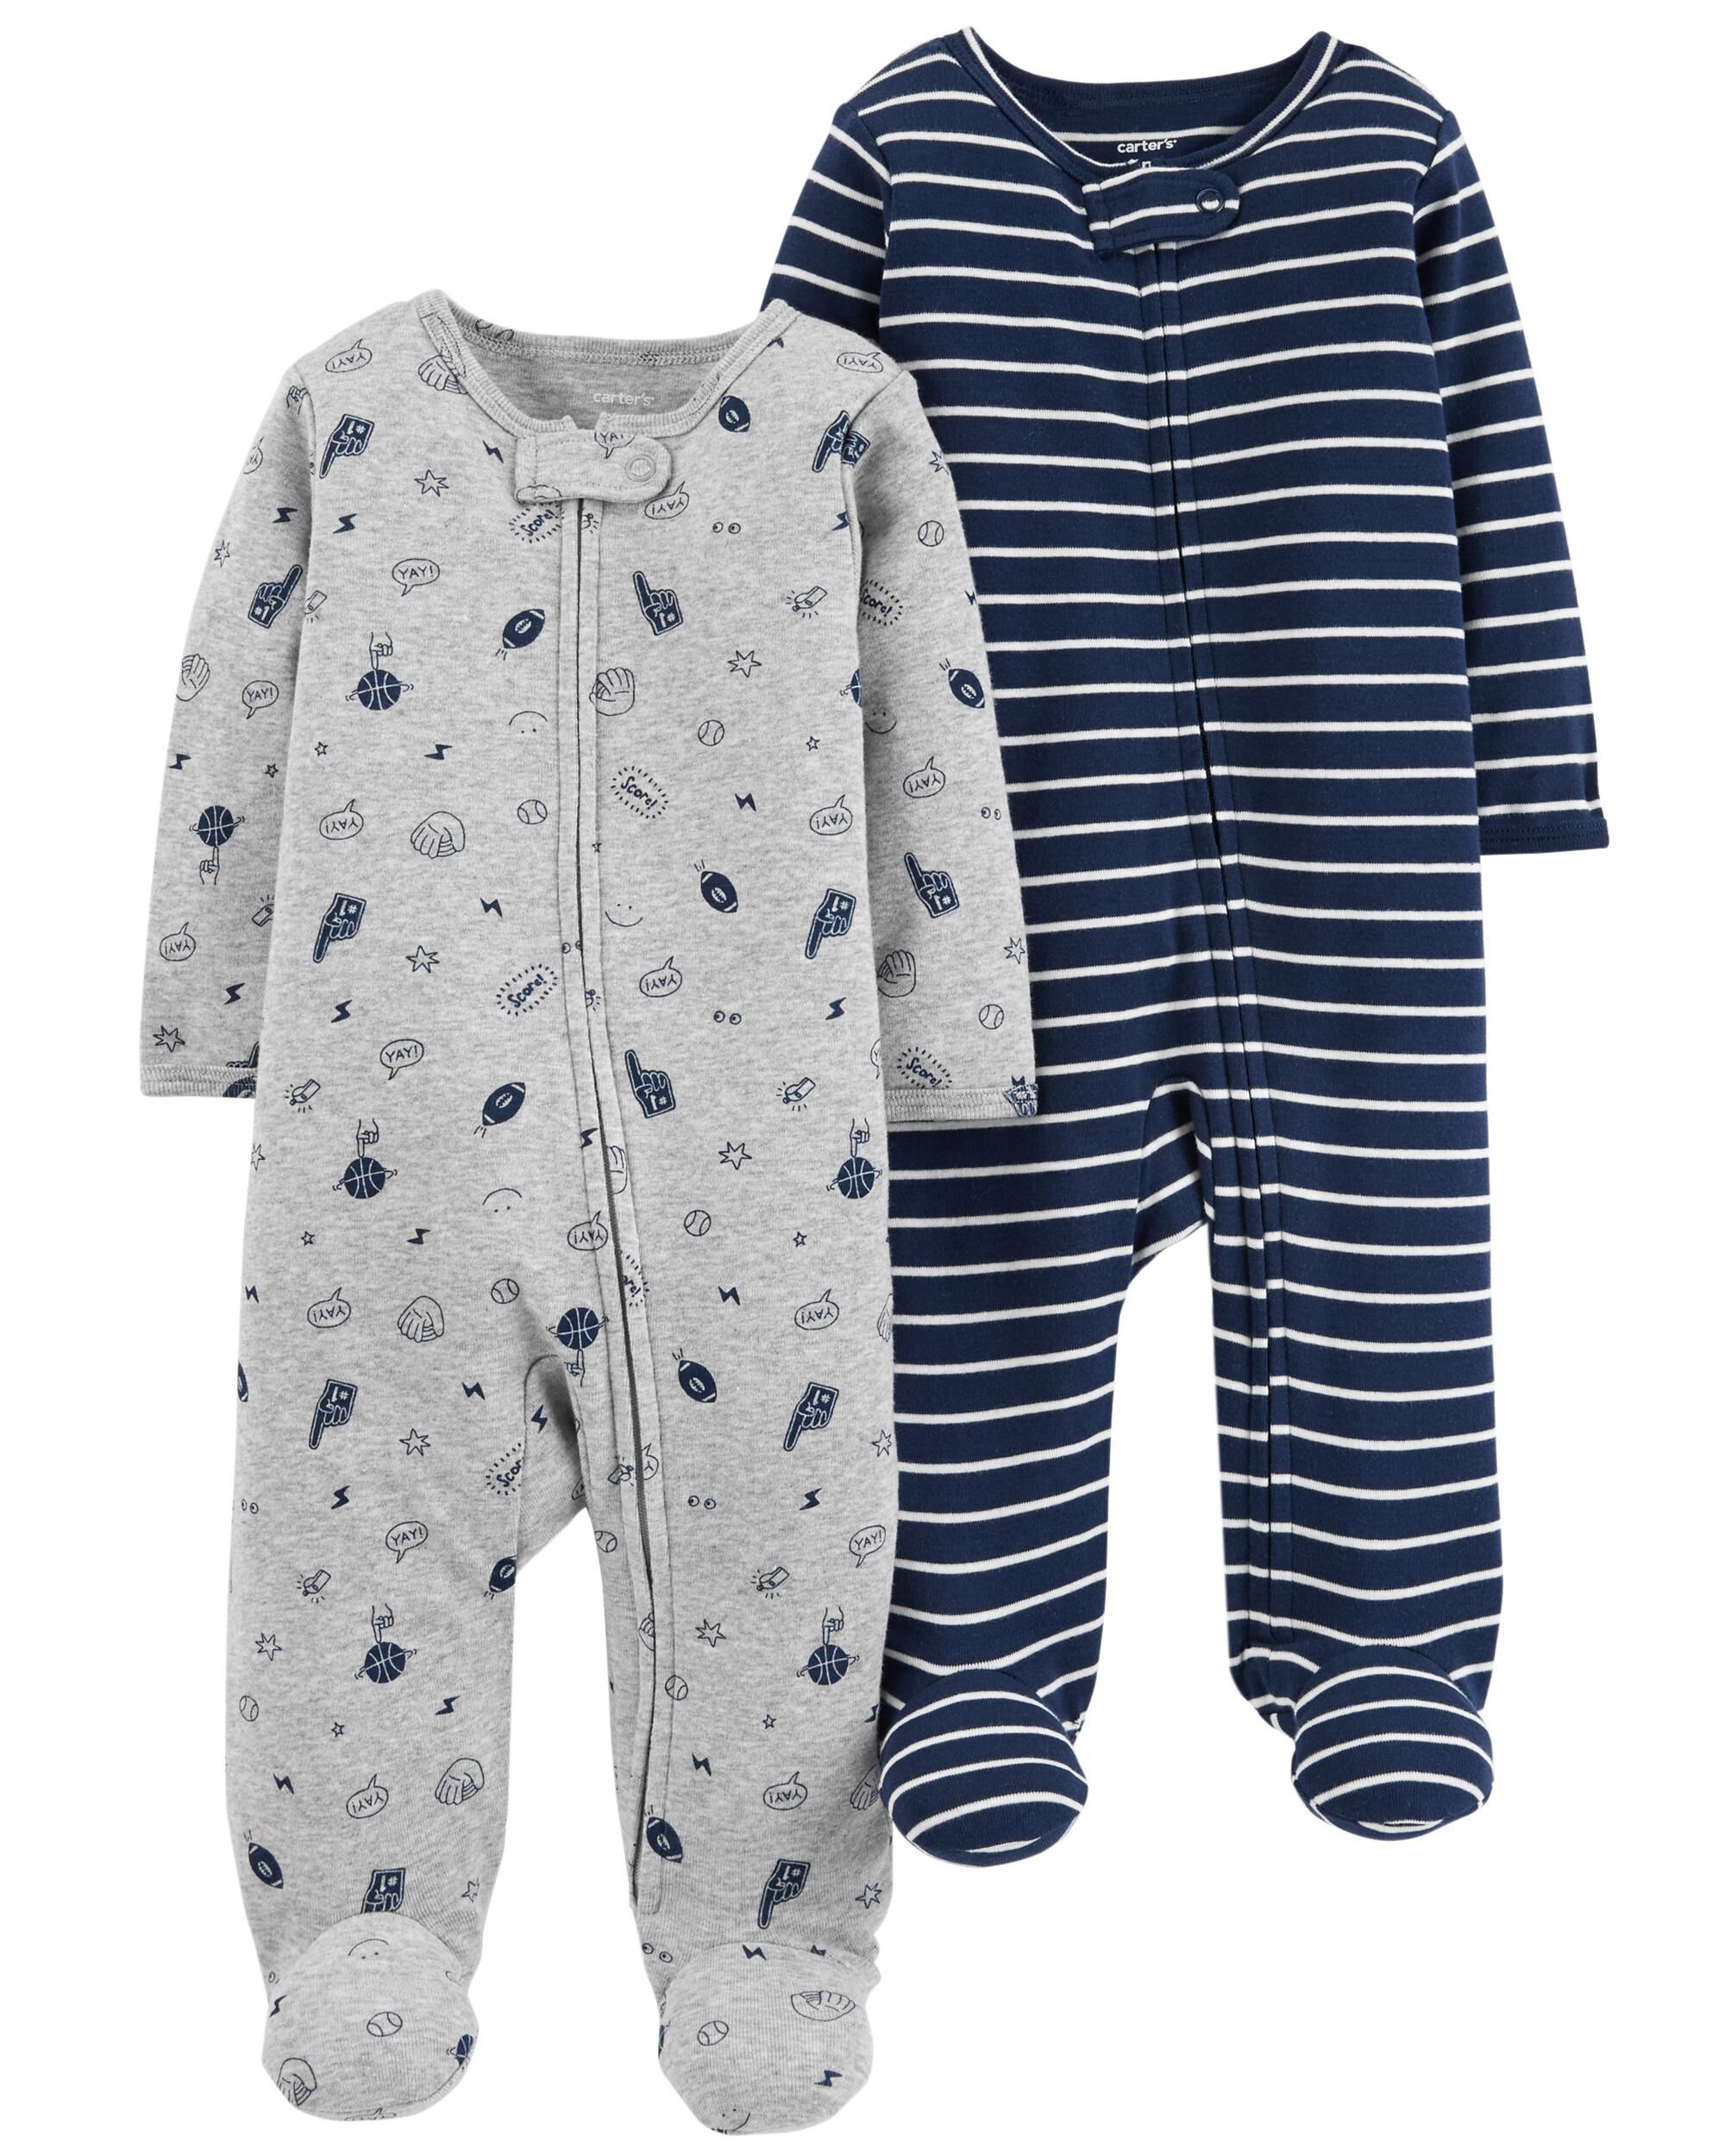 98a518c7c 2-Pack Zip-Up Cotton Sleep   Play